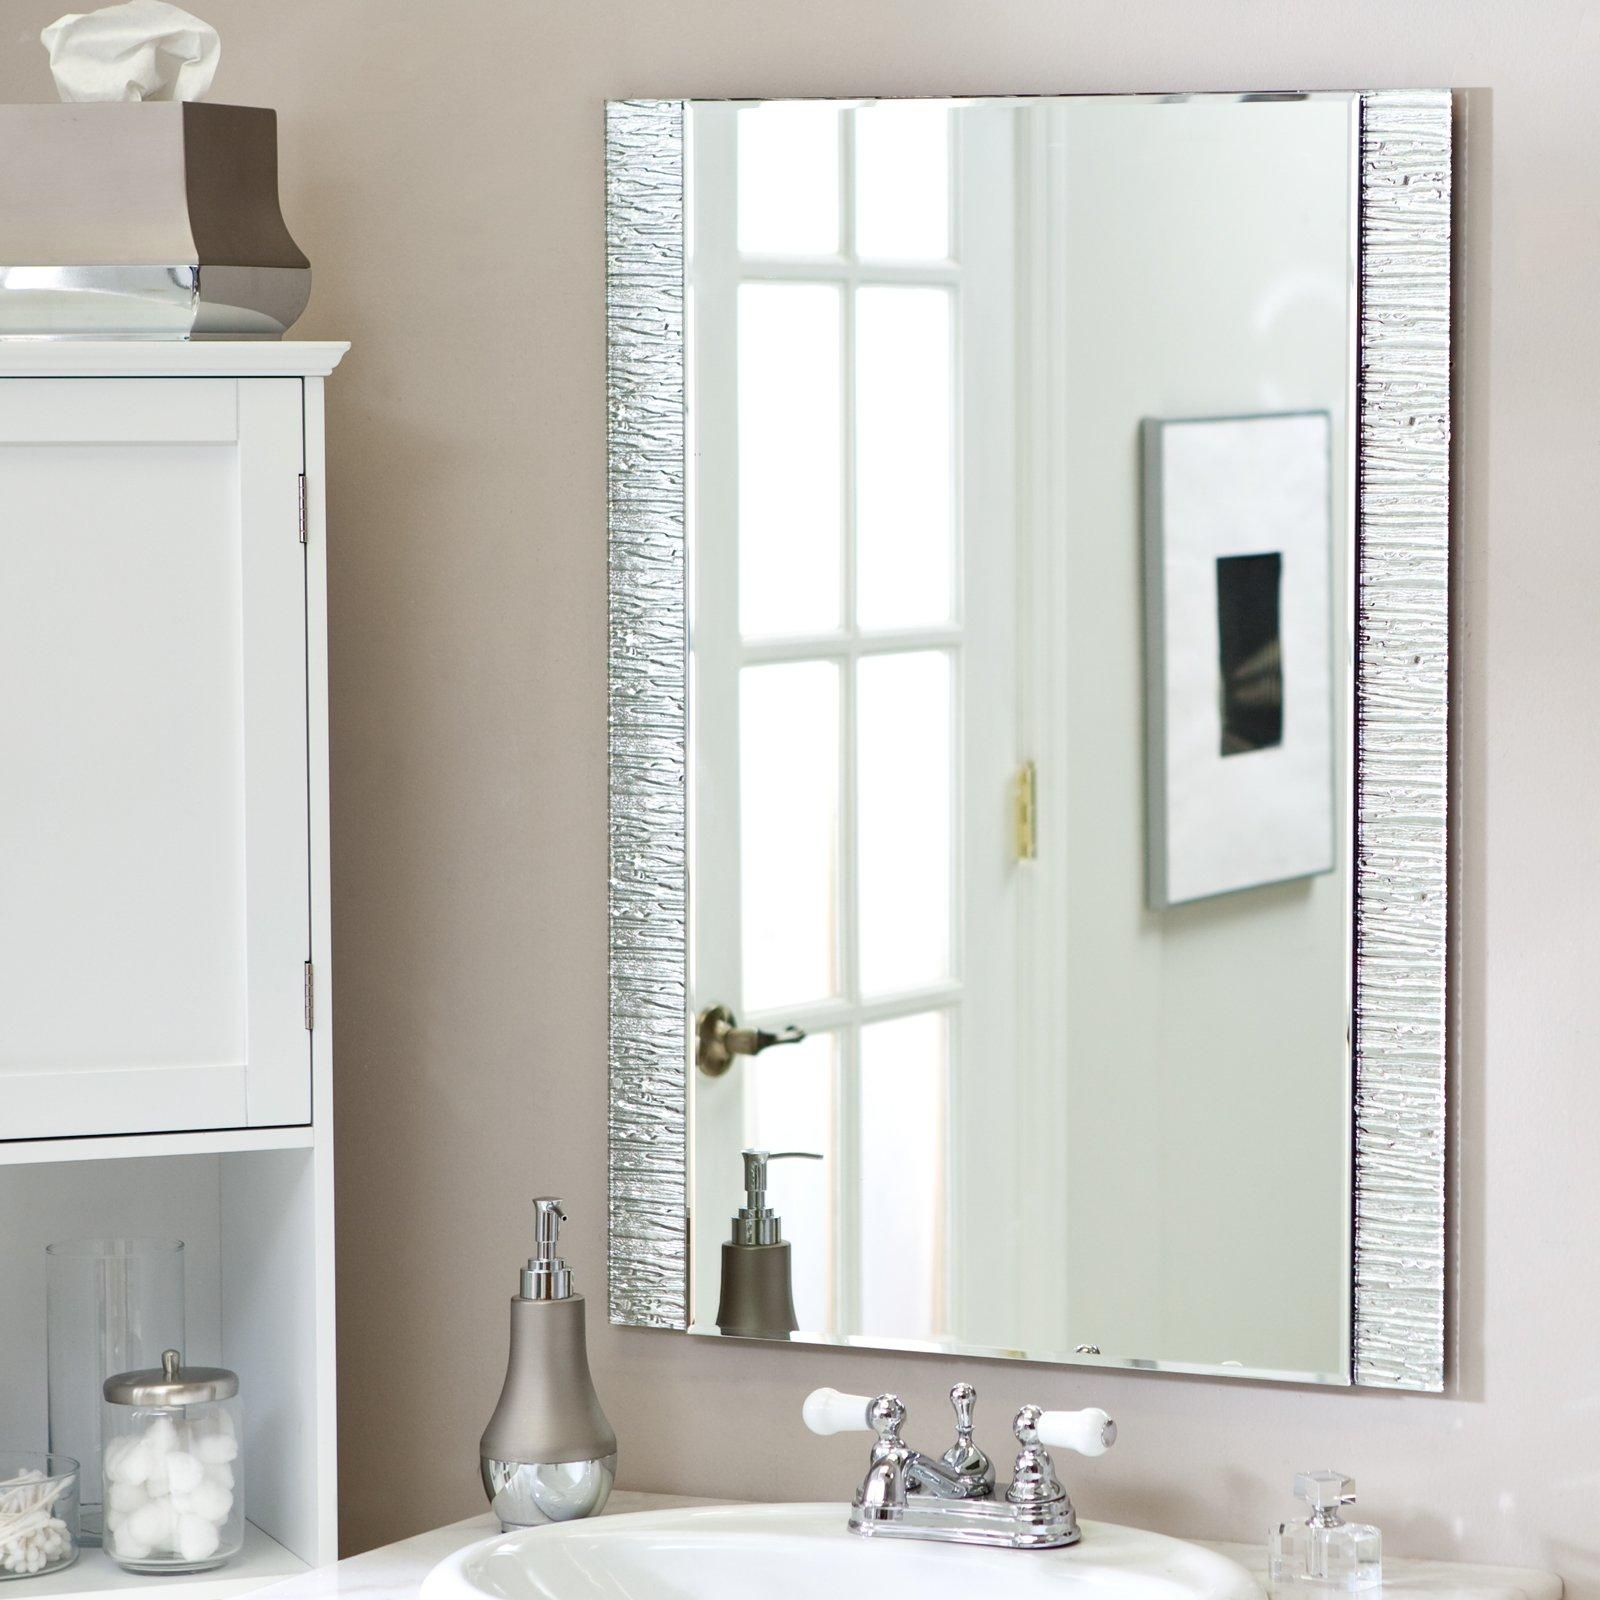 Bathroom : Beautiful Bathroom Vanity Mirrors Decorative Mirrors With Regard To Decorative Mirrors For Bathroom Vanity (Image 6 of 20)